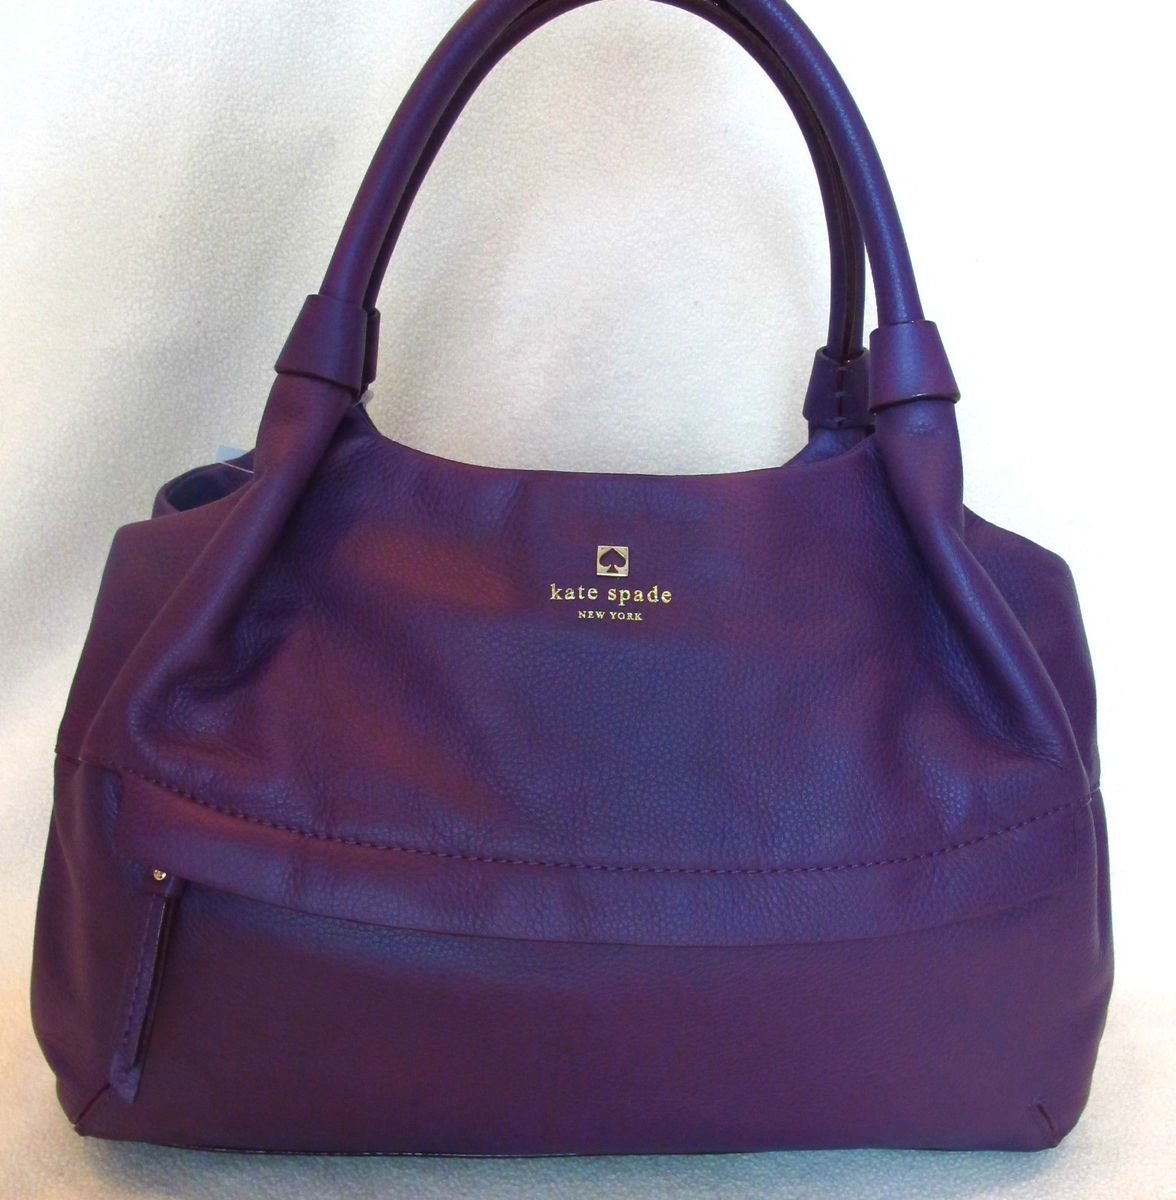 NWT NEW Kate Spade Grant Park Leather Stevie Purse Bag Bershire Bexley